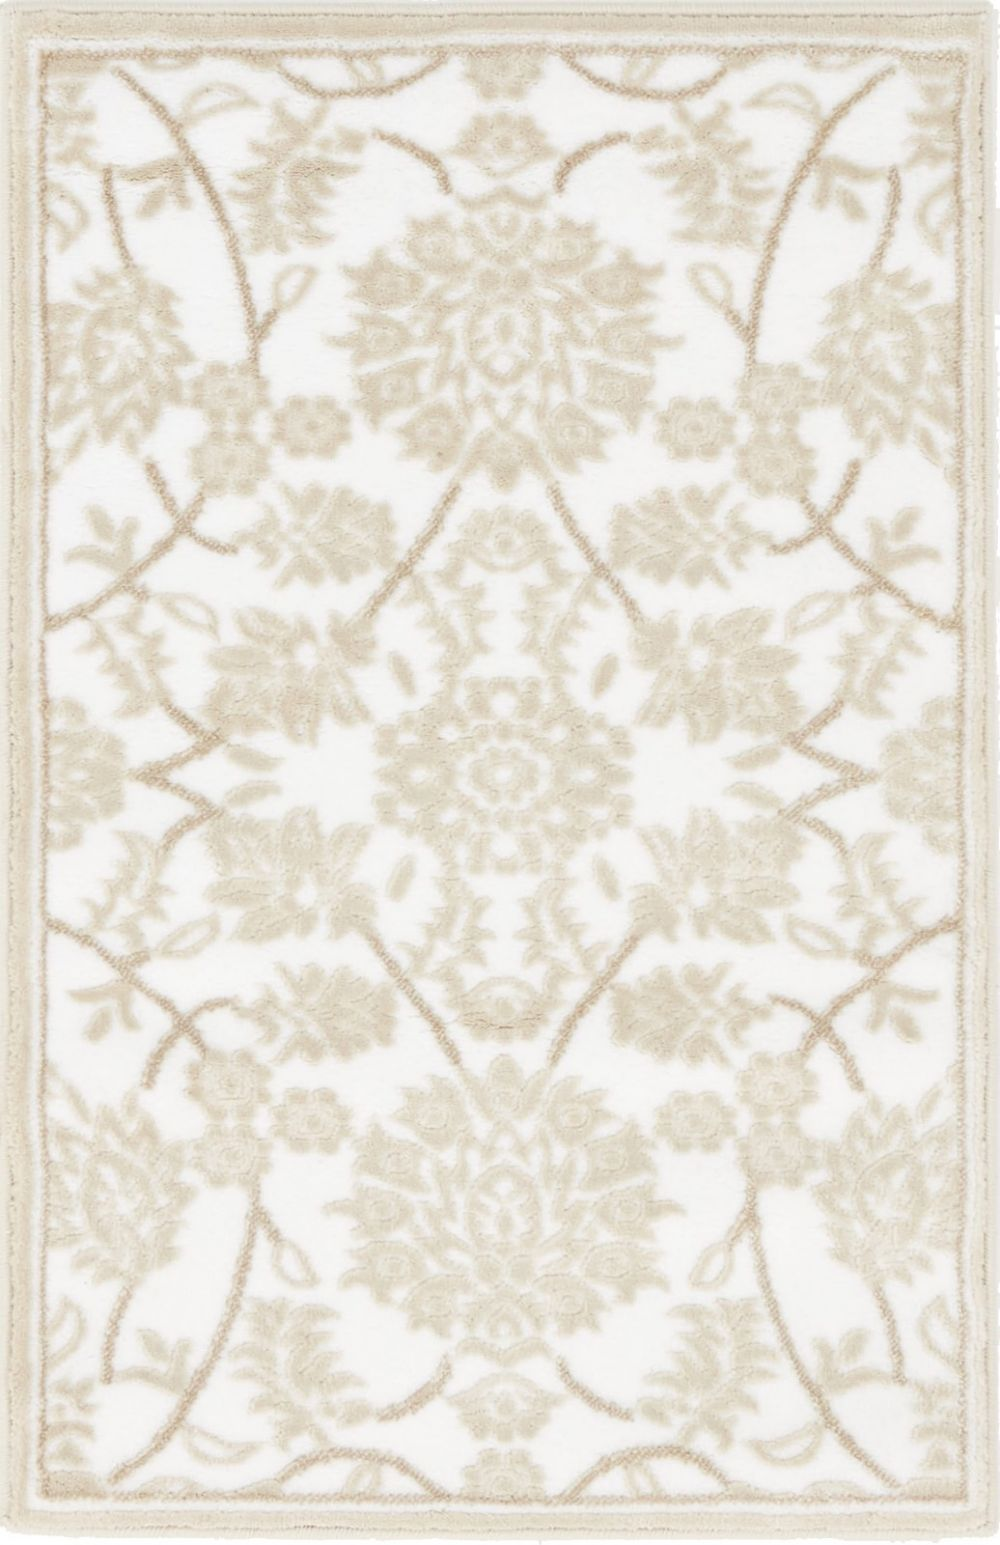 unique loom rushmore country & floral area rug collection